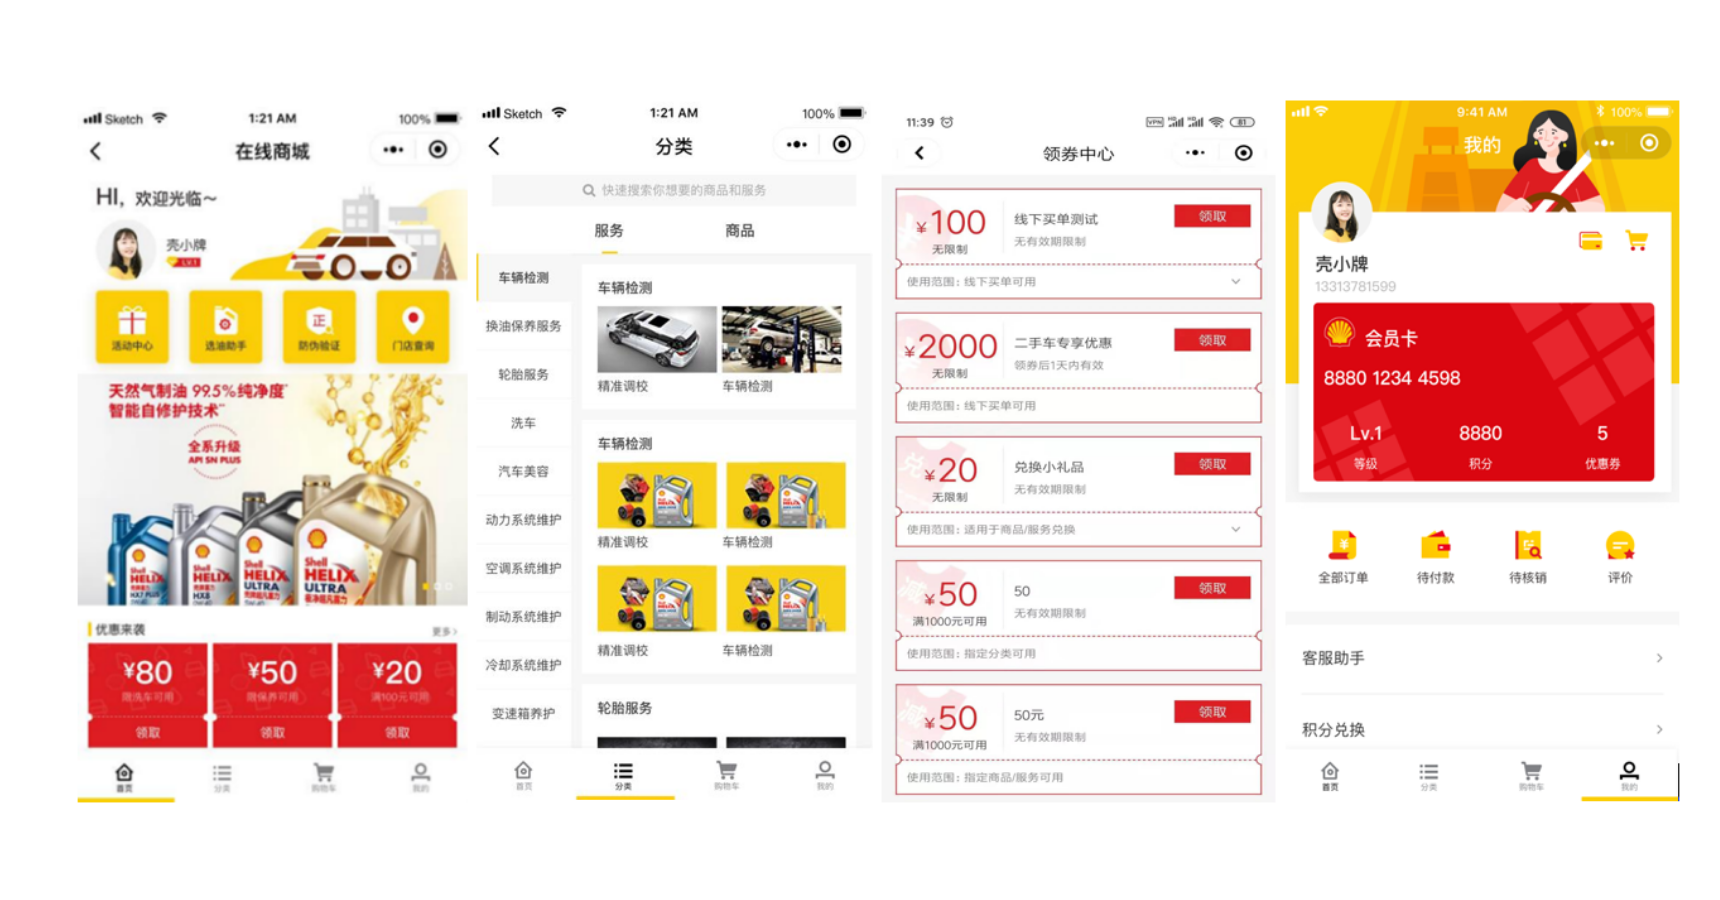 Shell – Reshape Business to Achieve Digital Transformation on WeChat Ecosystem